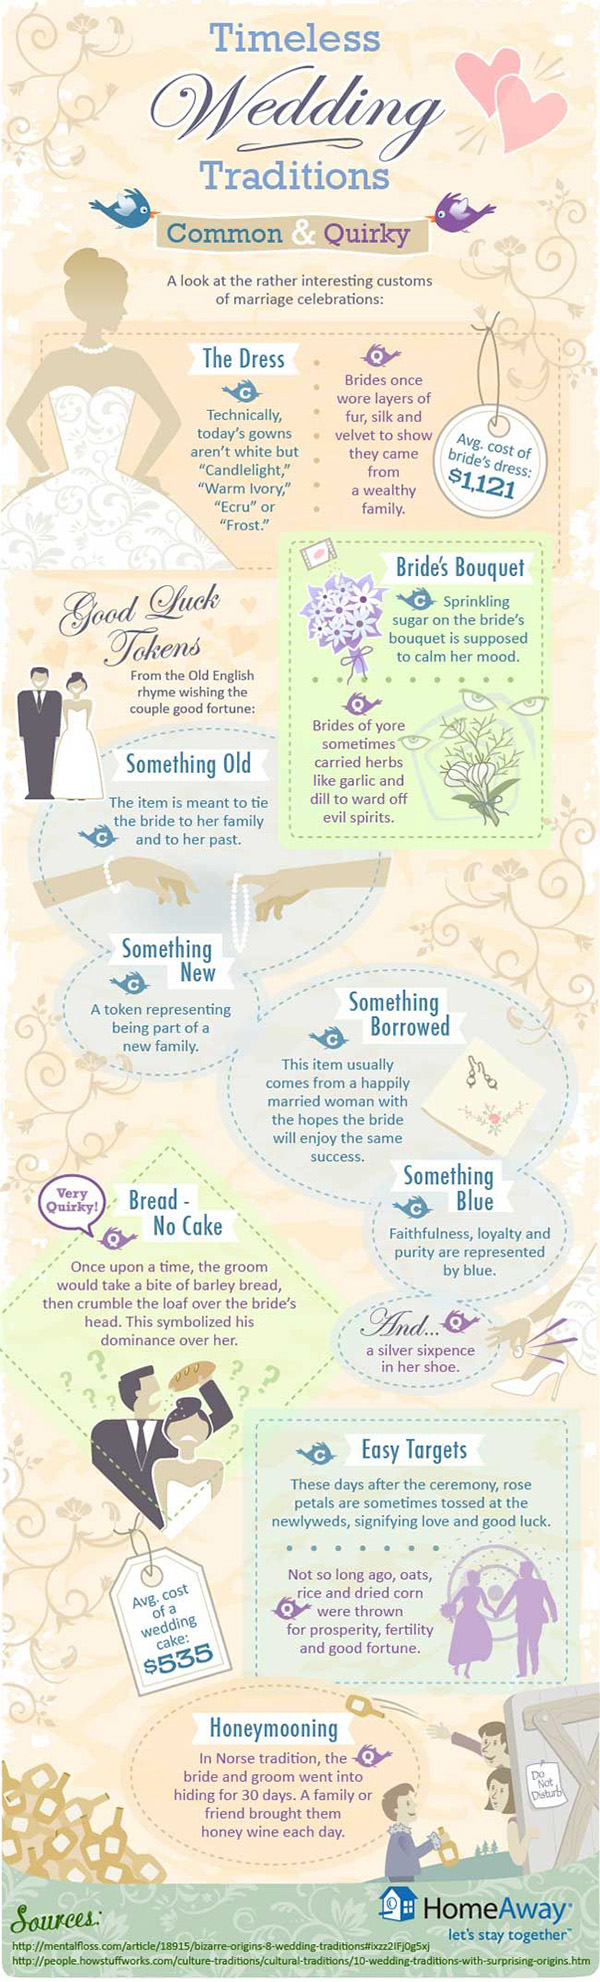 timeless wedding traditions to plan your wedding